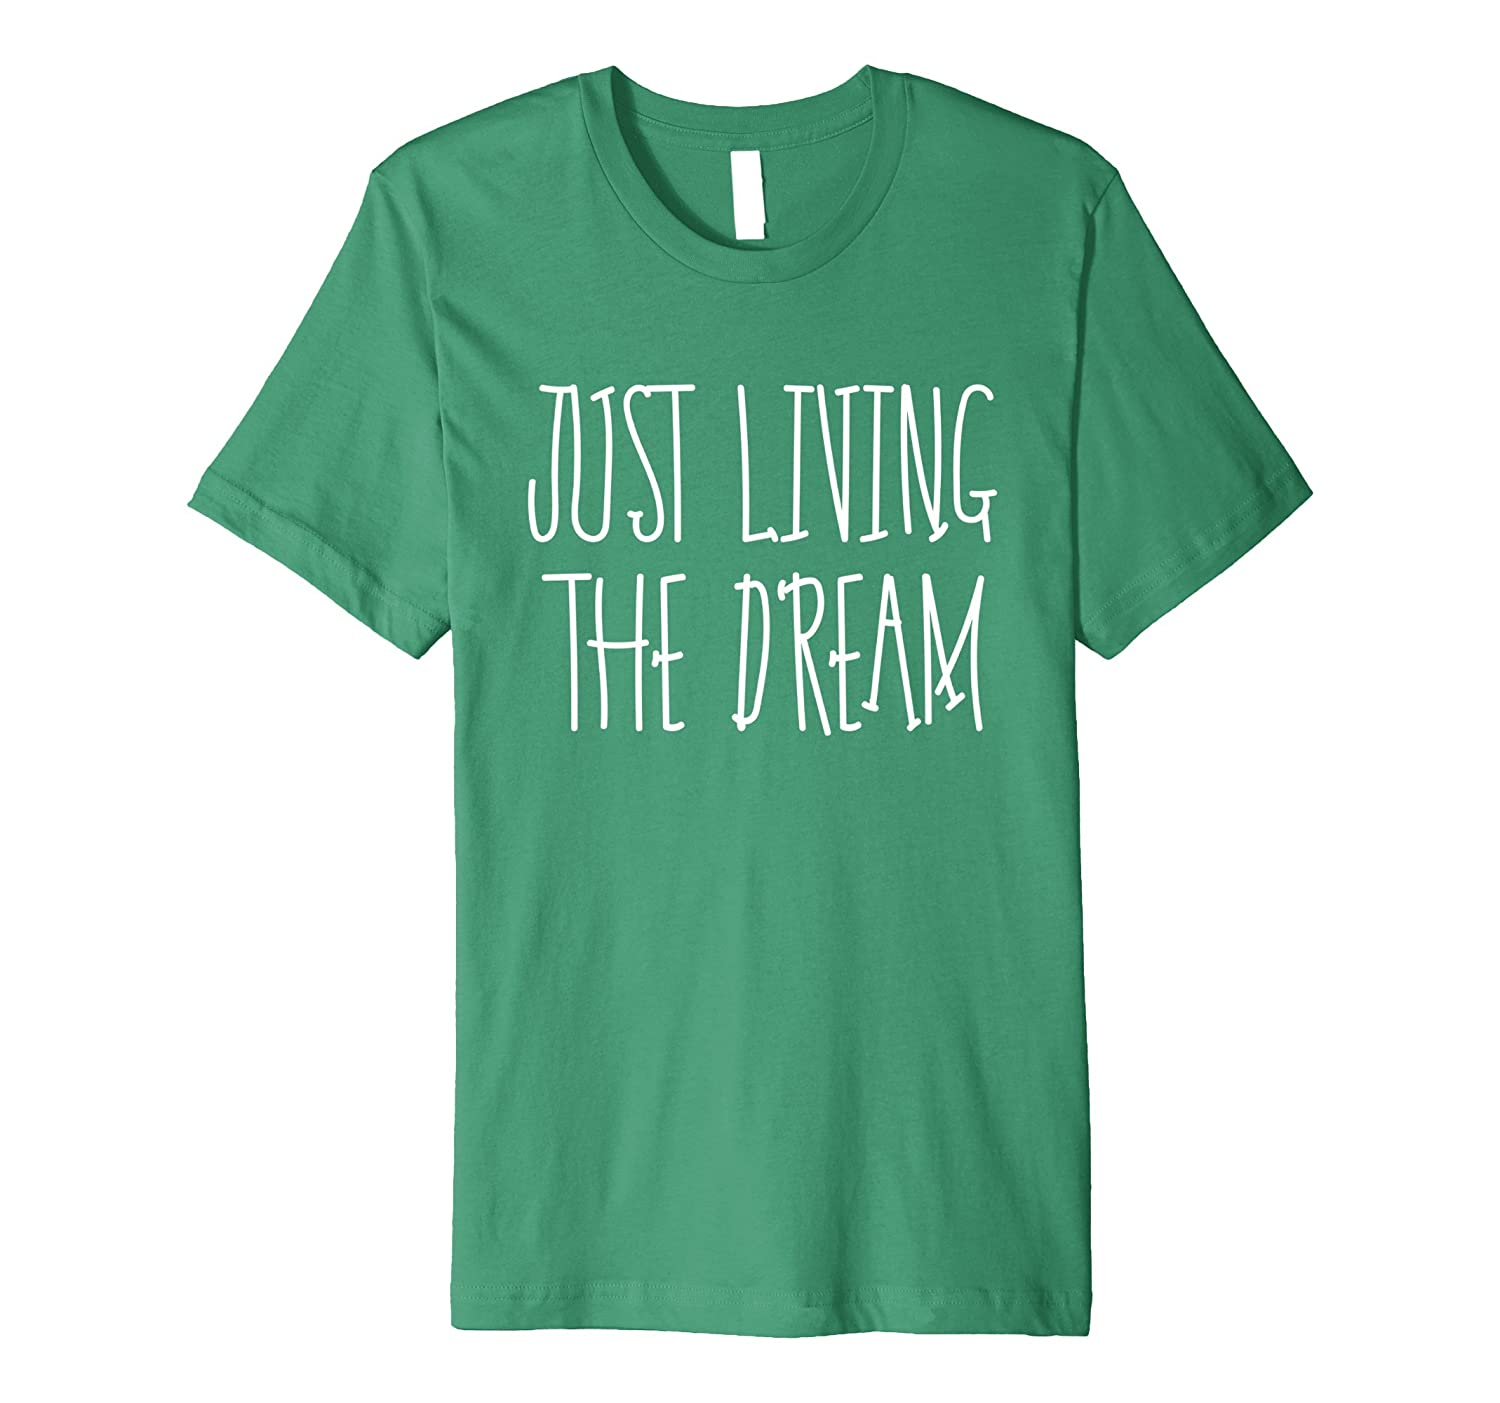 00d8ab766e3 Just Living The Dream – Inspirational Quote T-Shirt-PL – Polozatee